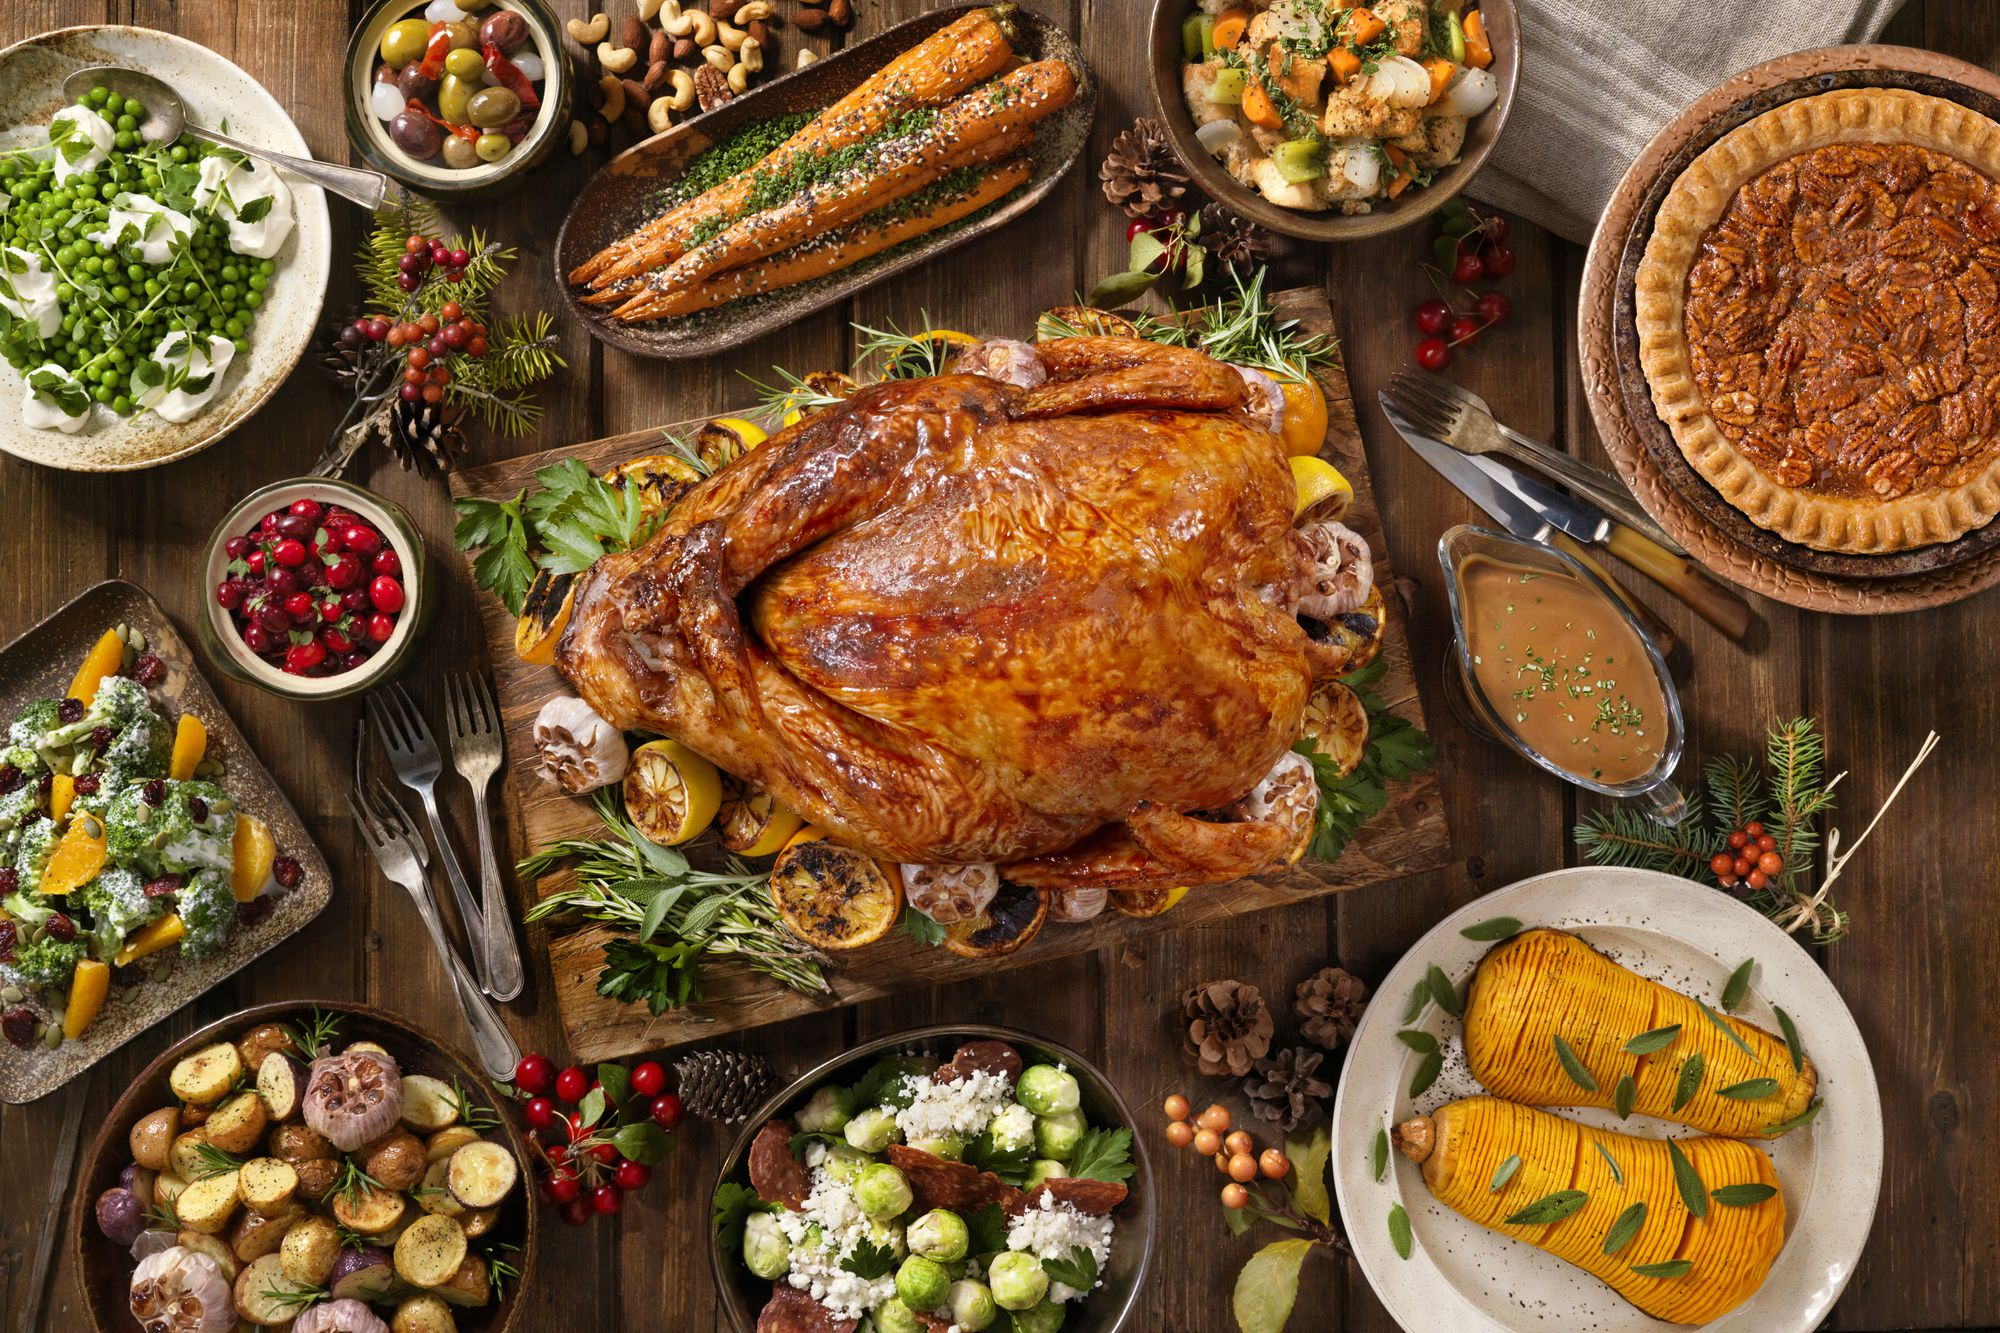 Tips to Eating Mindfully During the Holidays